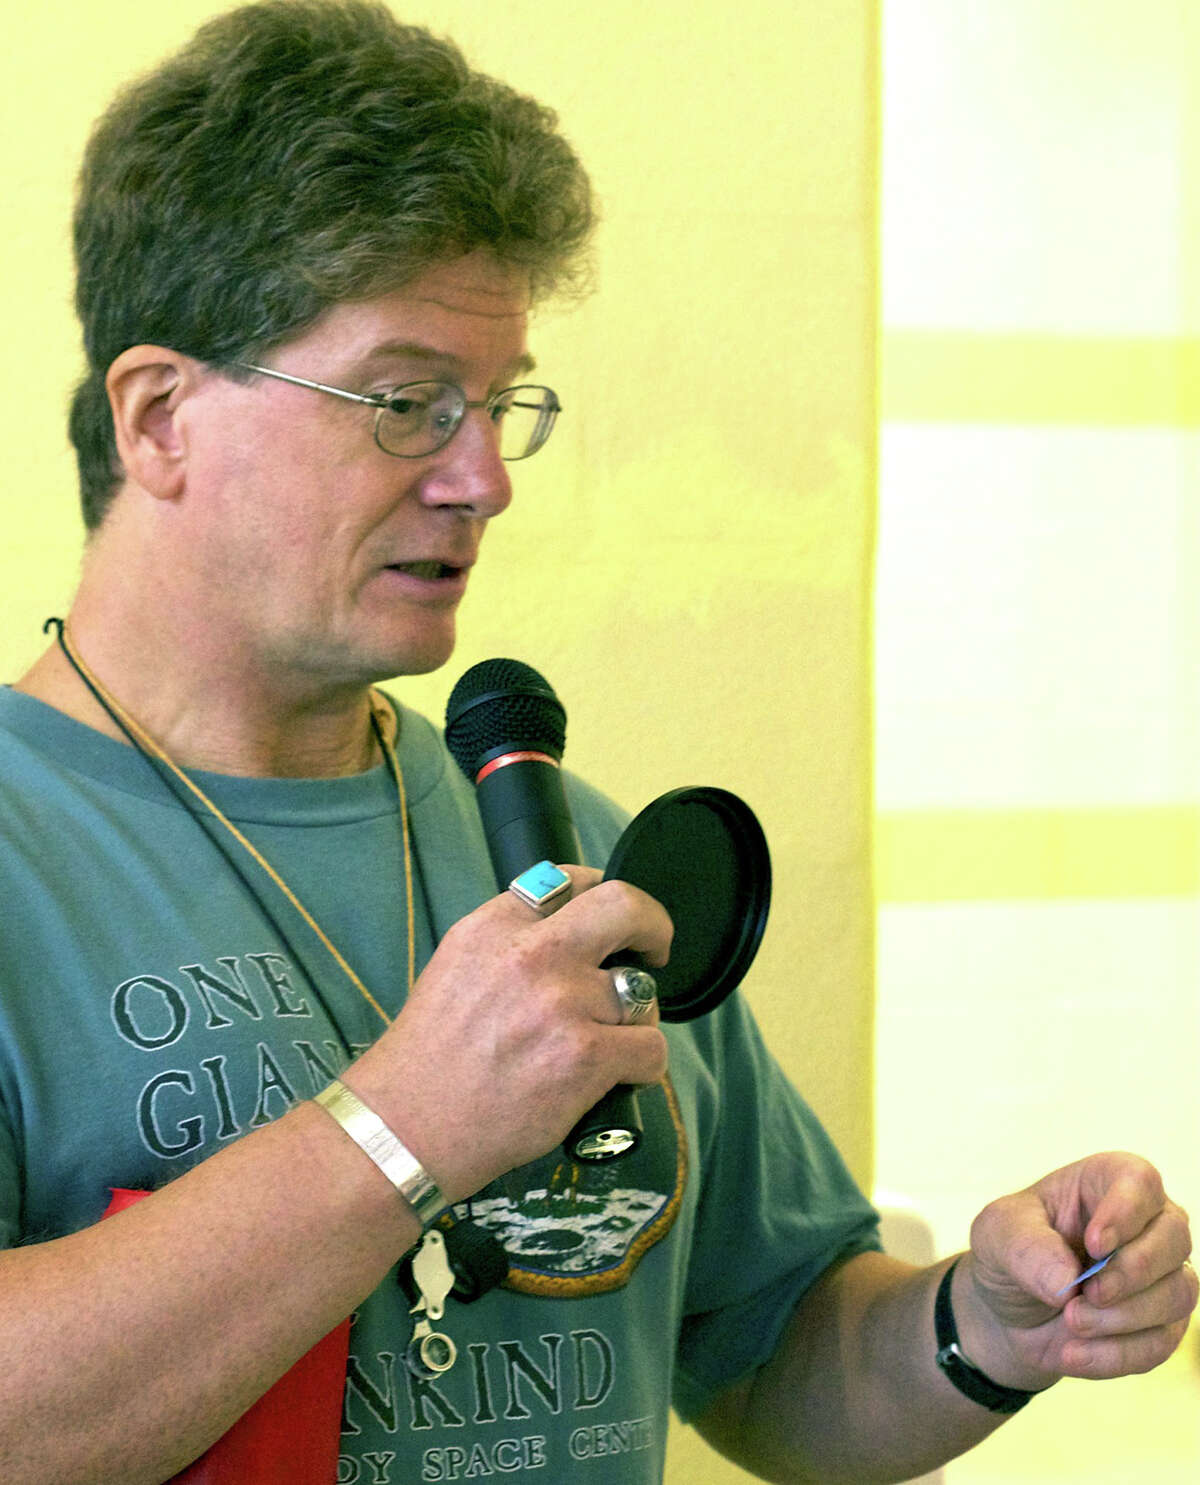 """Dan """"Mac"""" McAuliffe of Brewster, N.Y. reads the winning number for the hourly raffle during during the Danbury Mineralogical Society's annual jewelry, gem and mineral show at New Milford High School. Sept. 8, 2012"""